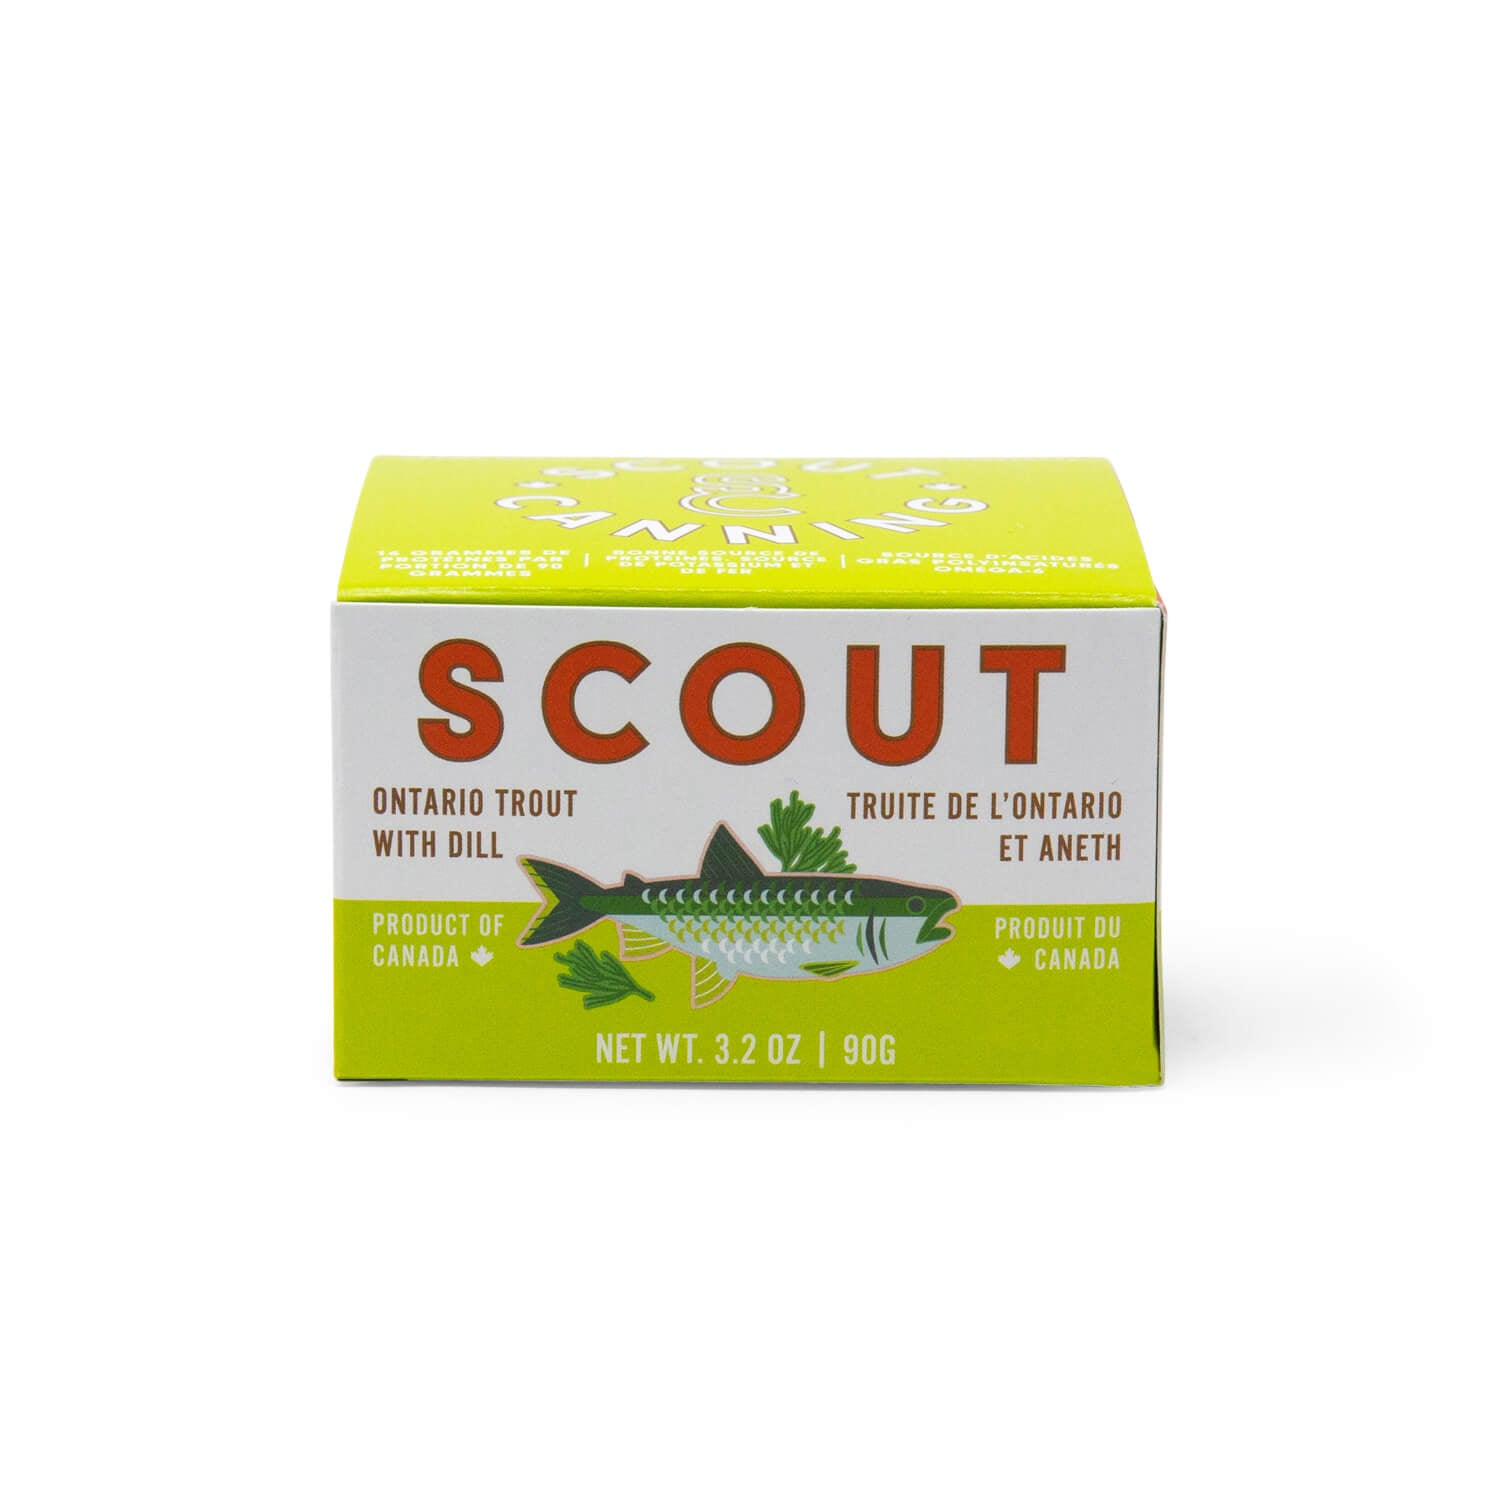 Scout Ontario Trout (90g)